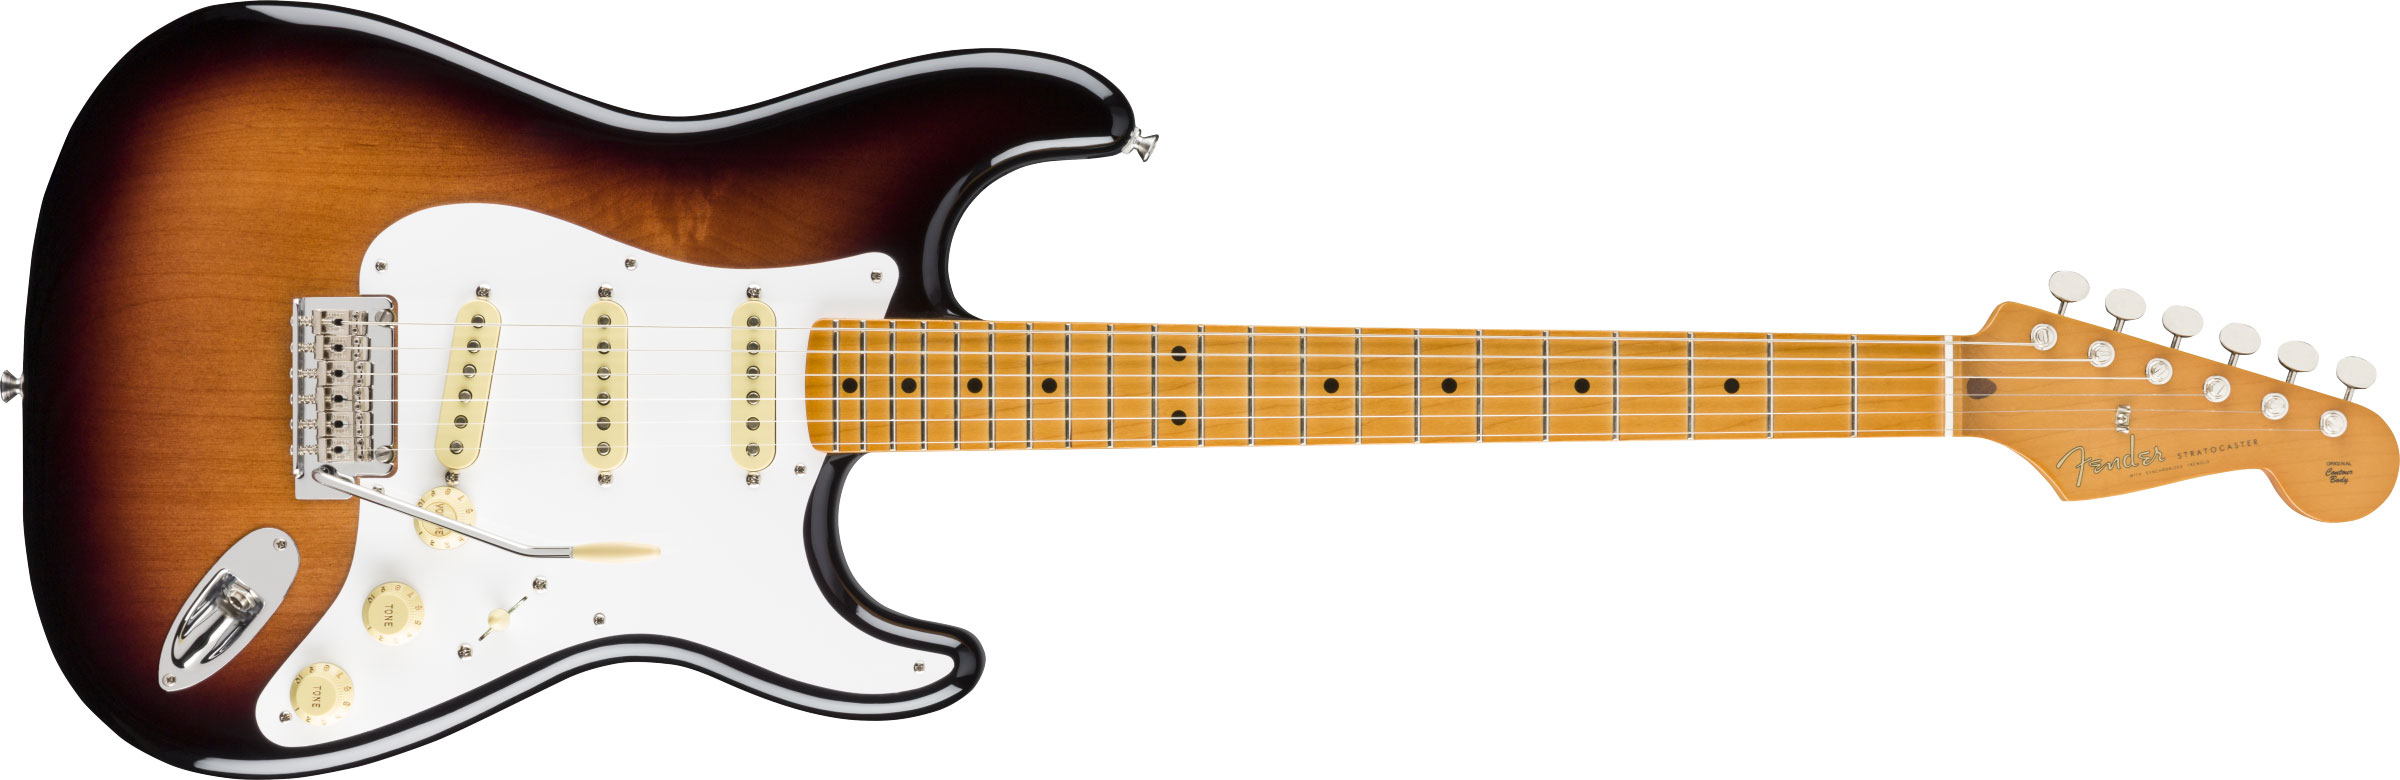 GUITARRA FENDER VINTERA 50S STRATOCASTER MODIFIED MAPLE 014-9962-303 2-COLOR SUNBURST